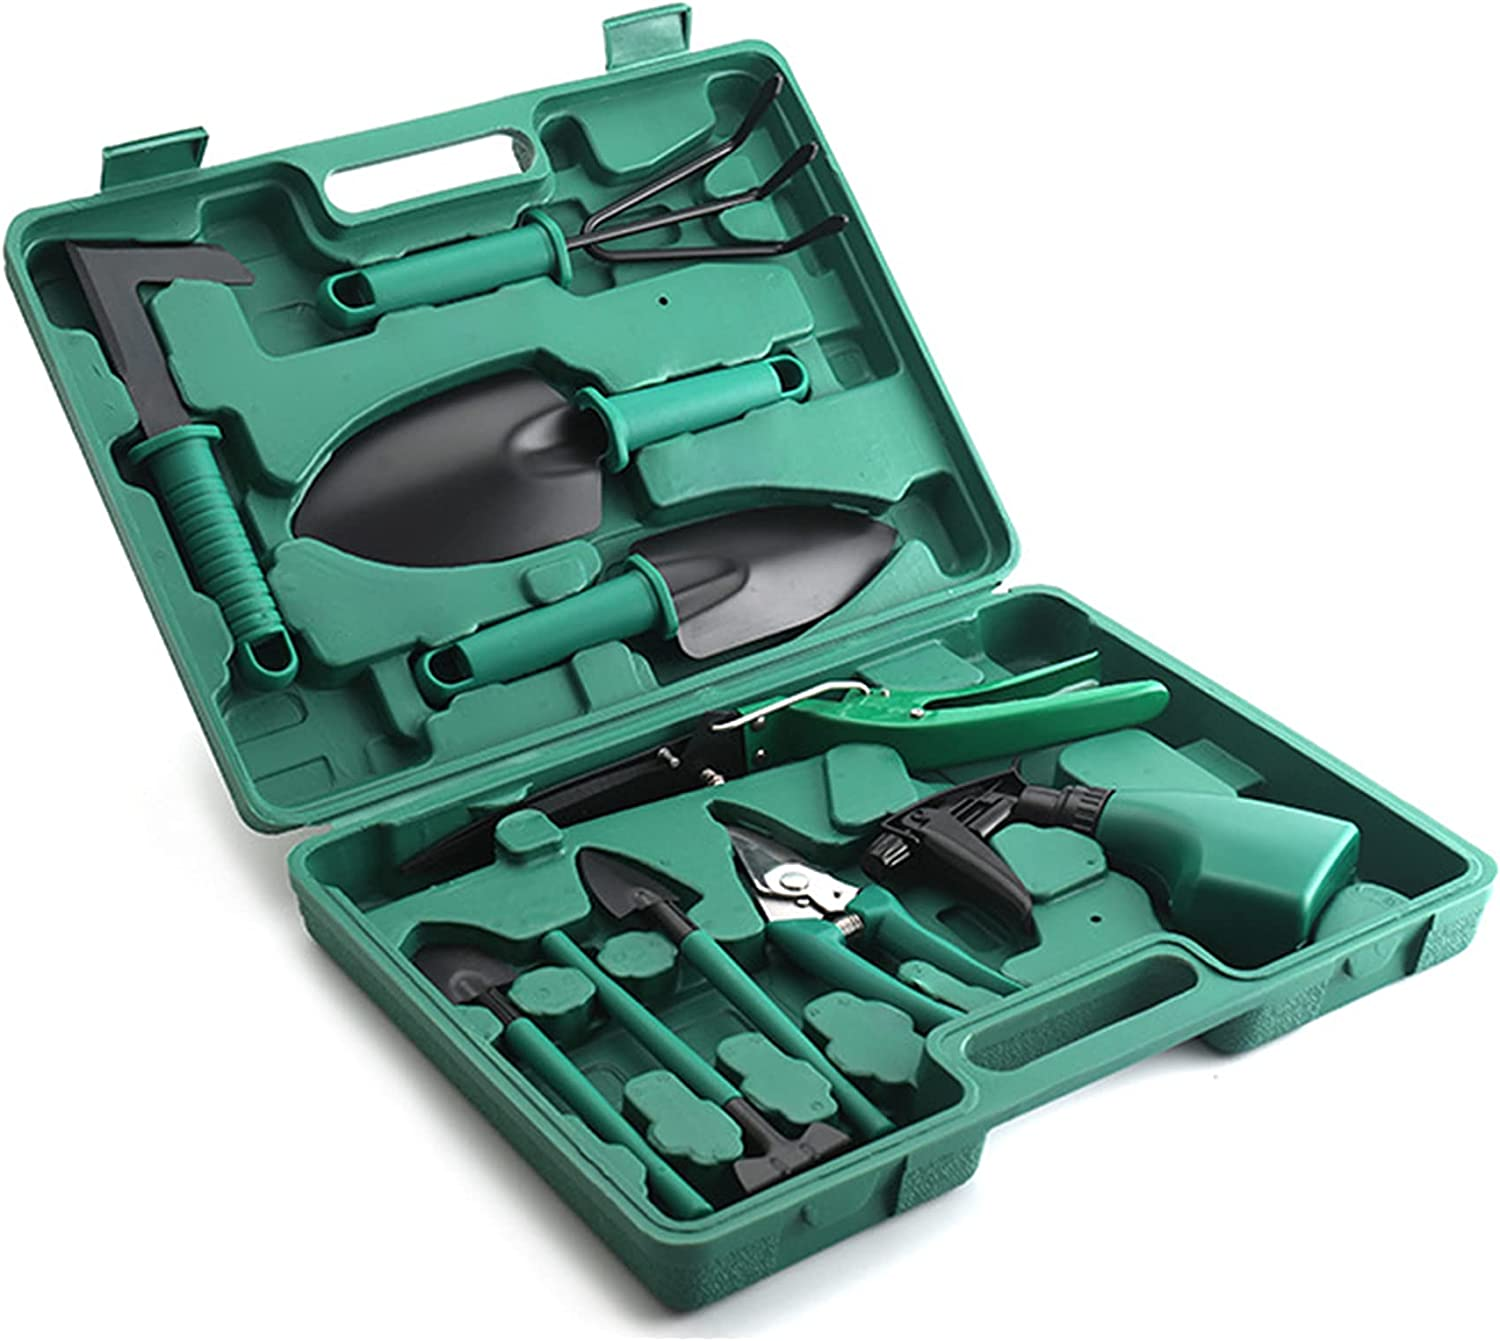 ANKUYER Garden Tools Max 71% Max 69% OFF OFF Set Aluminum Pieces for 10